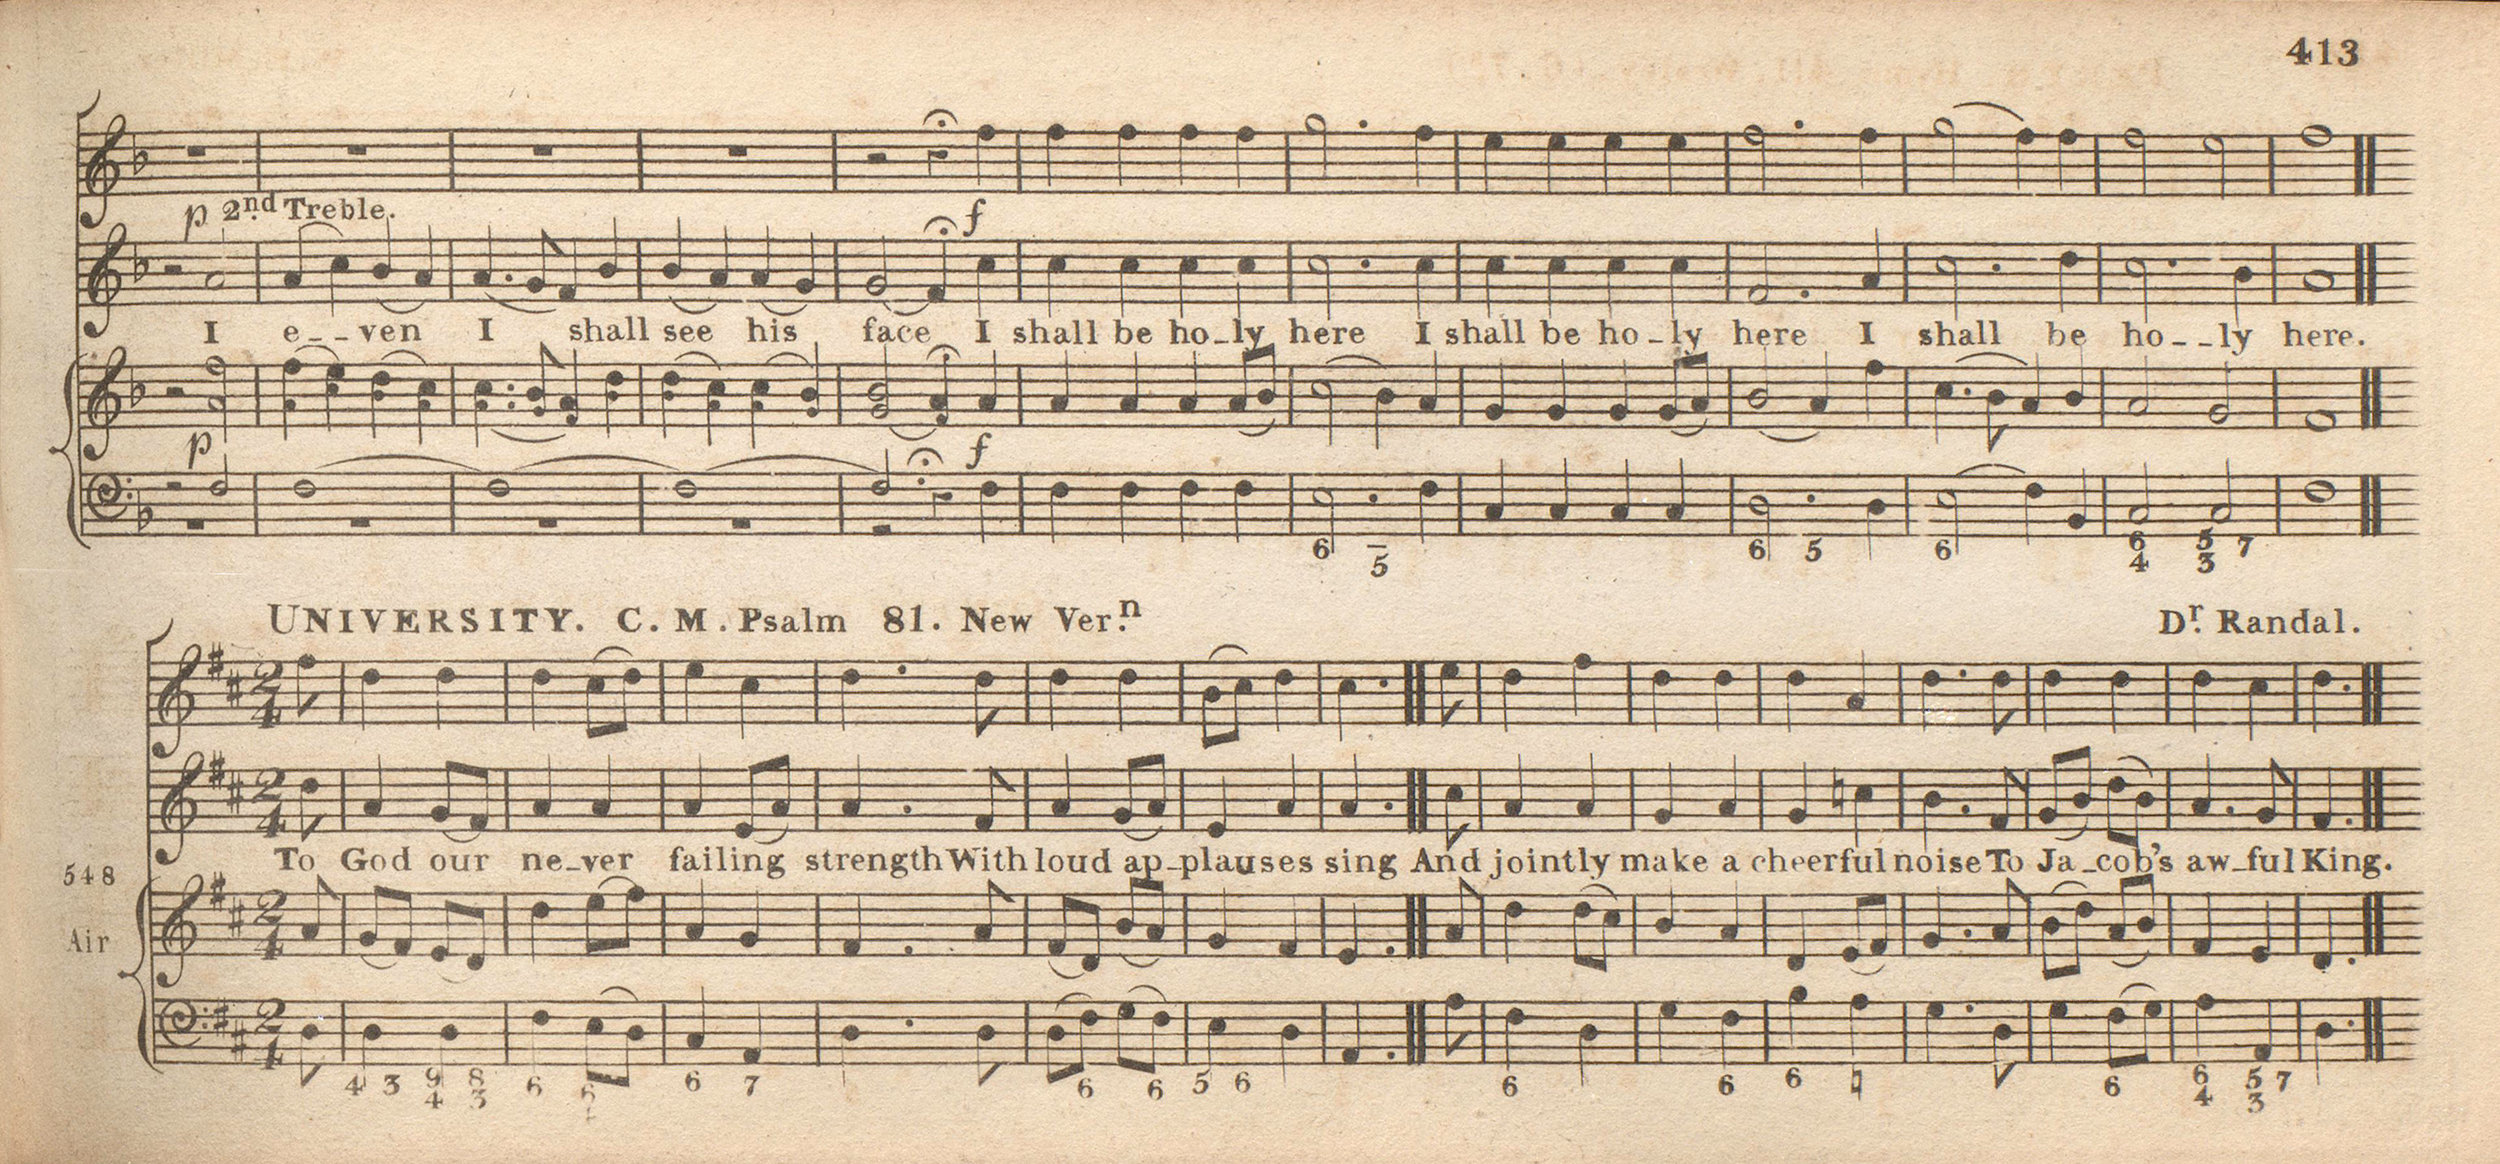 Fig. 4.  Thomas Clark,  The Congregational Harmonist or Clerk's Companion,  vol. 3 (London: W. Blackman, n.d.). Melody in the third voice (tenor).